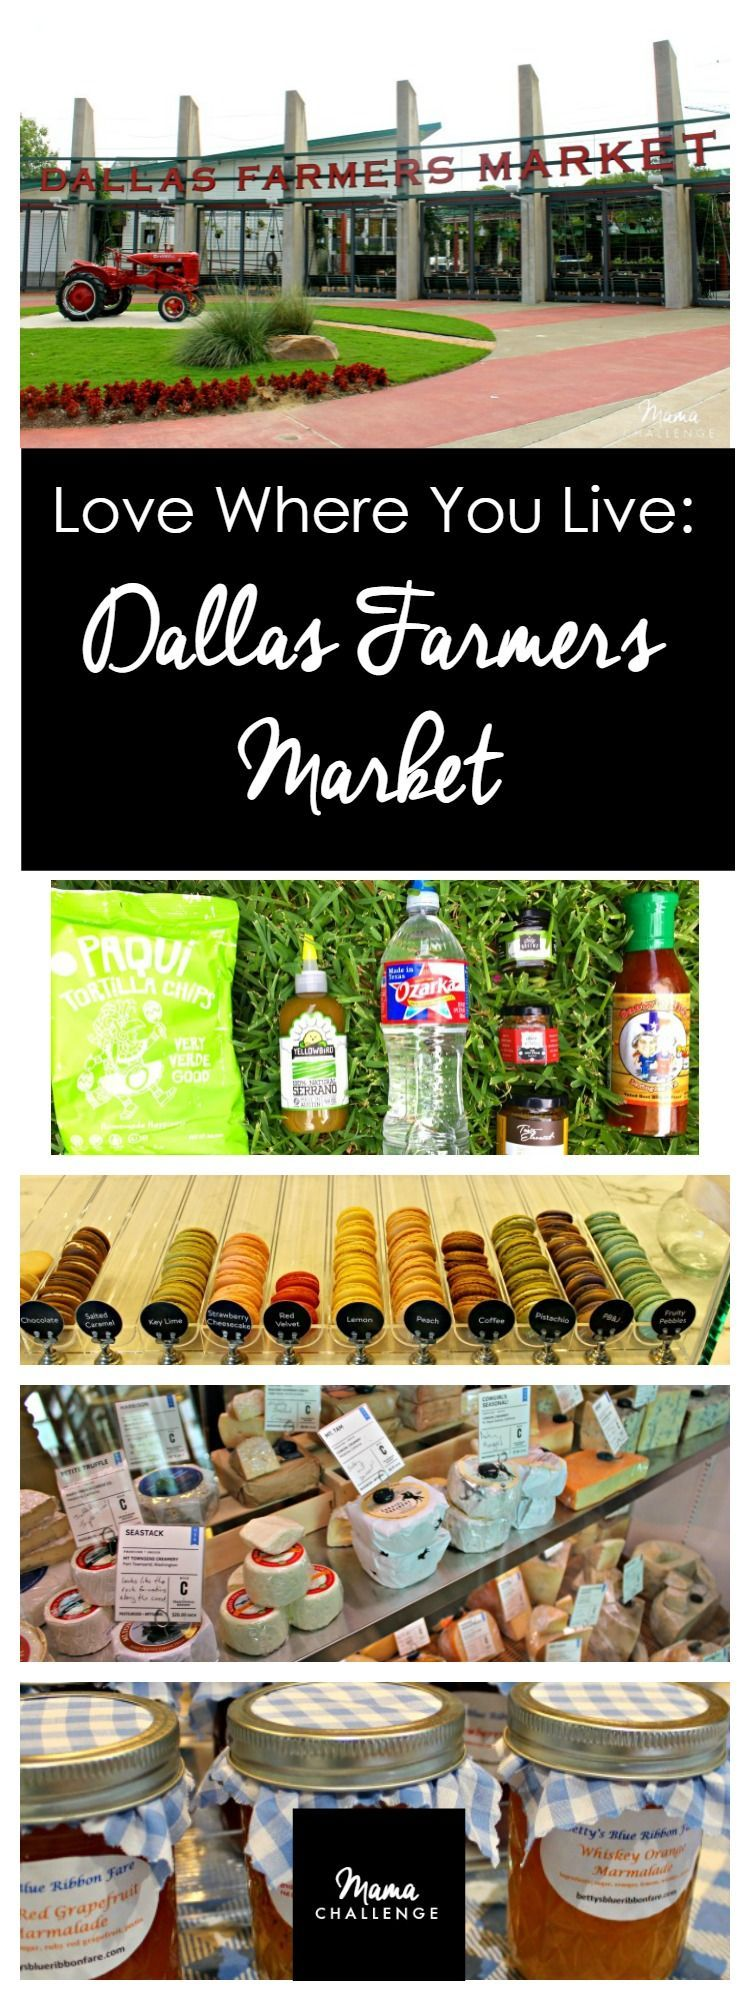 Where You Live: Dallas Farmers Market Looking to get a taste of REAL Texas? Then ask a Texan. I'm sharing some of my favorite tastes from one of my favorite Dallas spots: the Dallas Farmers Market and several of these must-have Texas tastes from Texas purveyors. Thanks to Ozarka® Brand Natural Spring Water for partnering with  for this